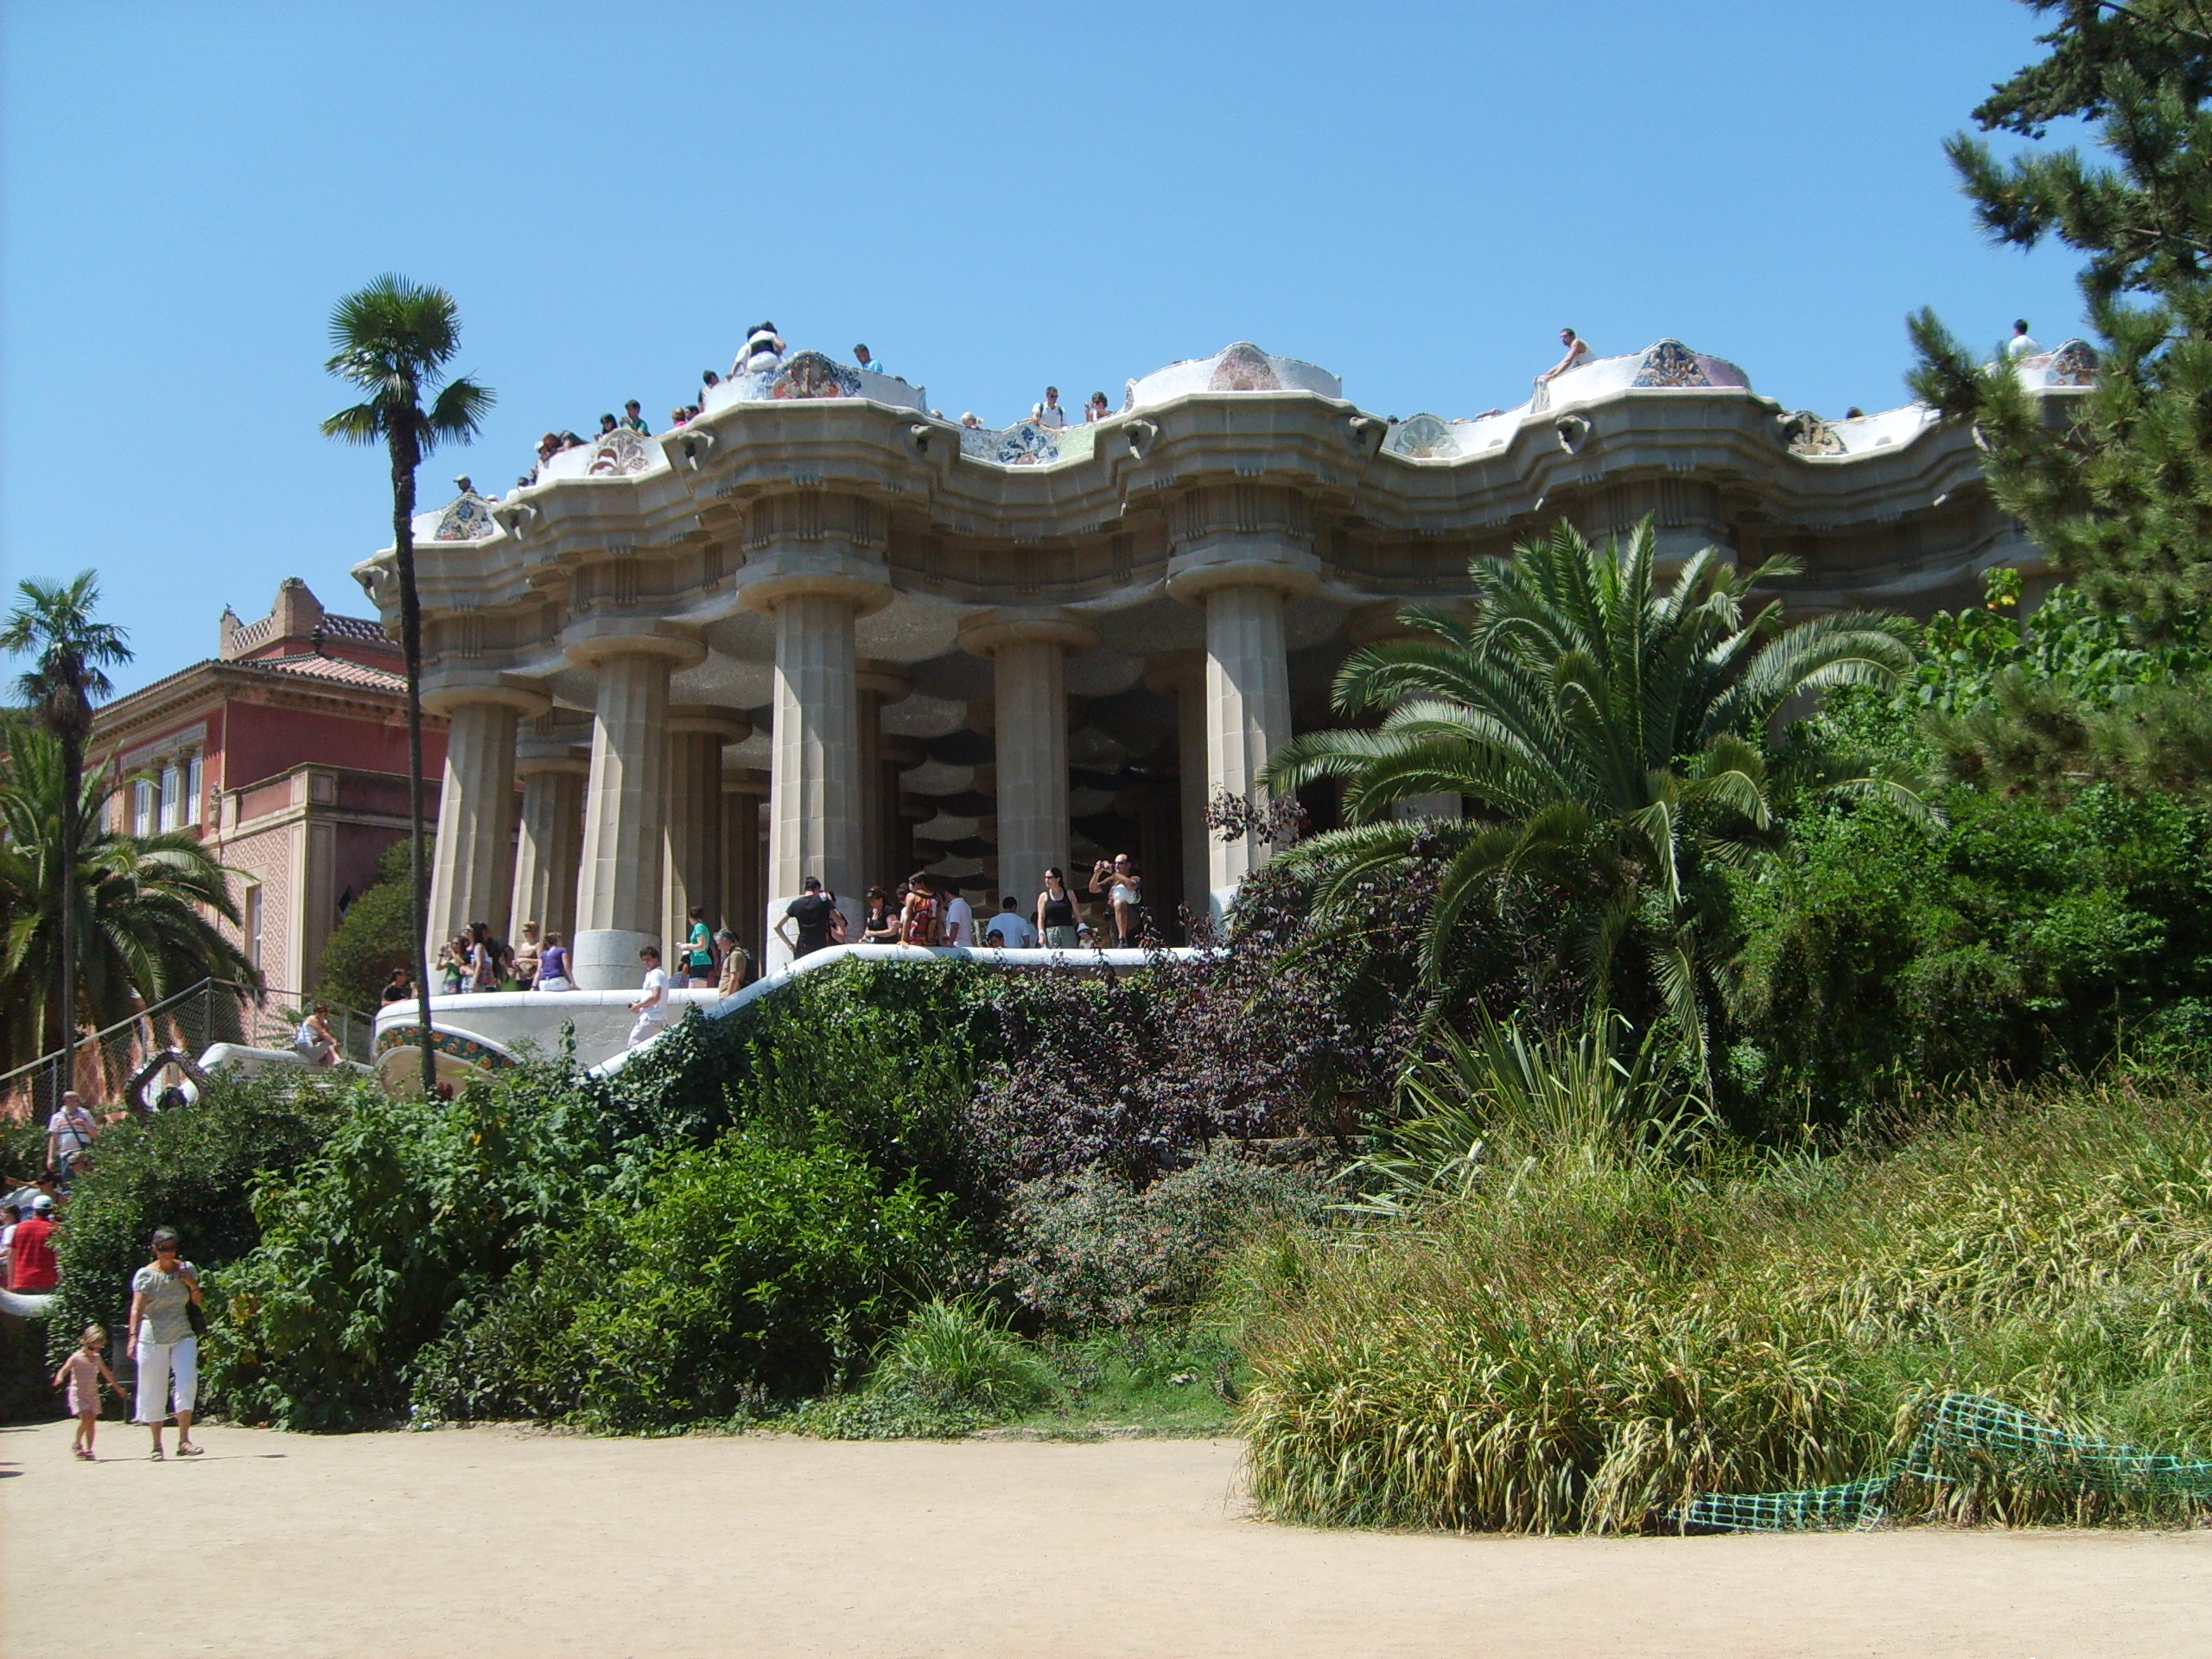 Park Guell Hypostyle Room